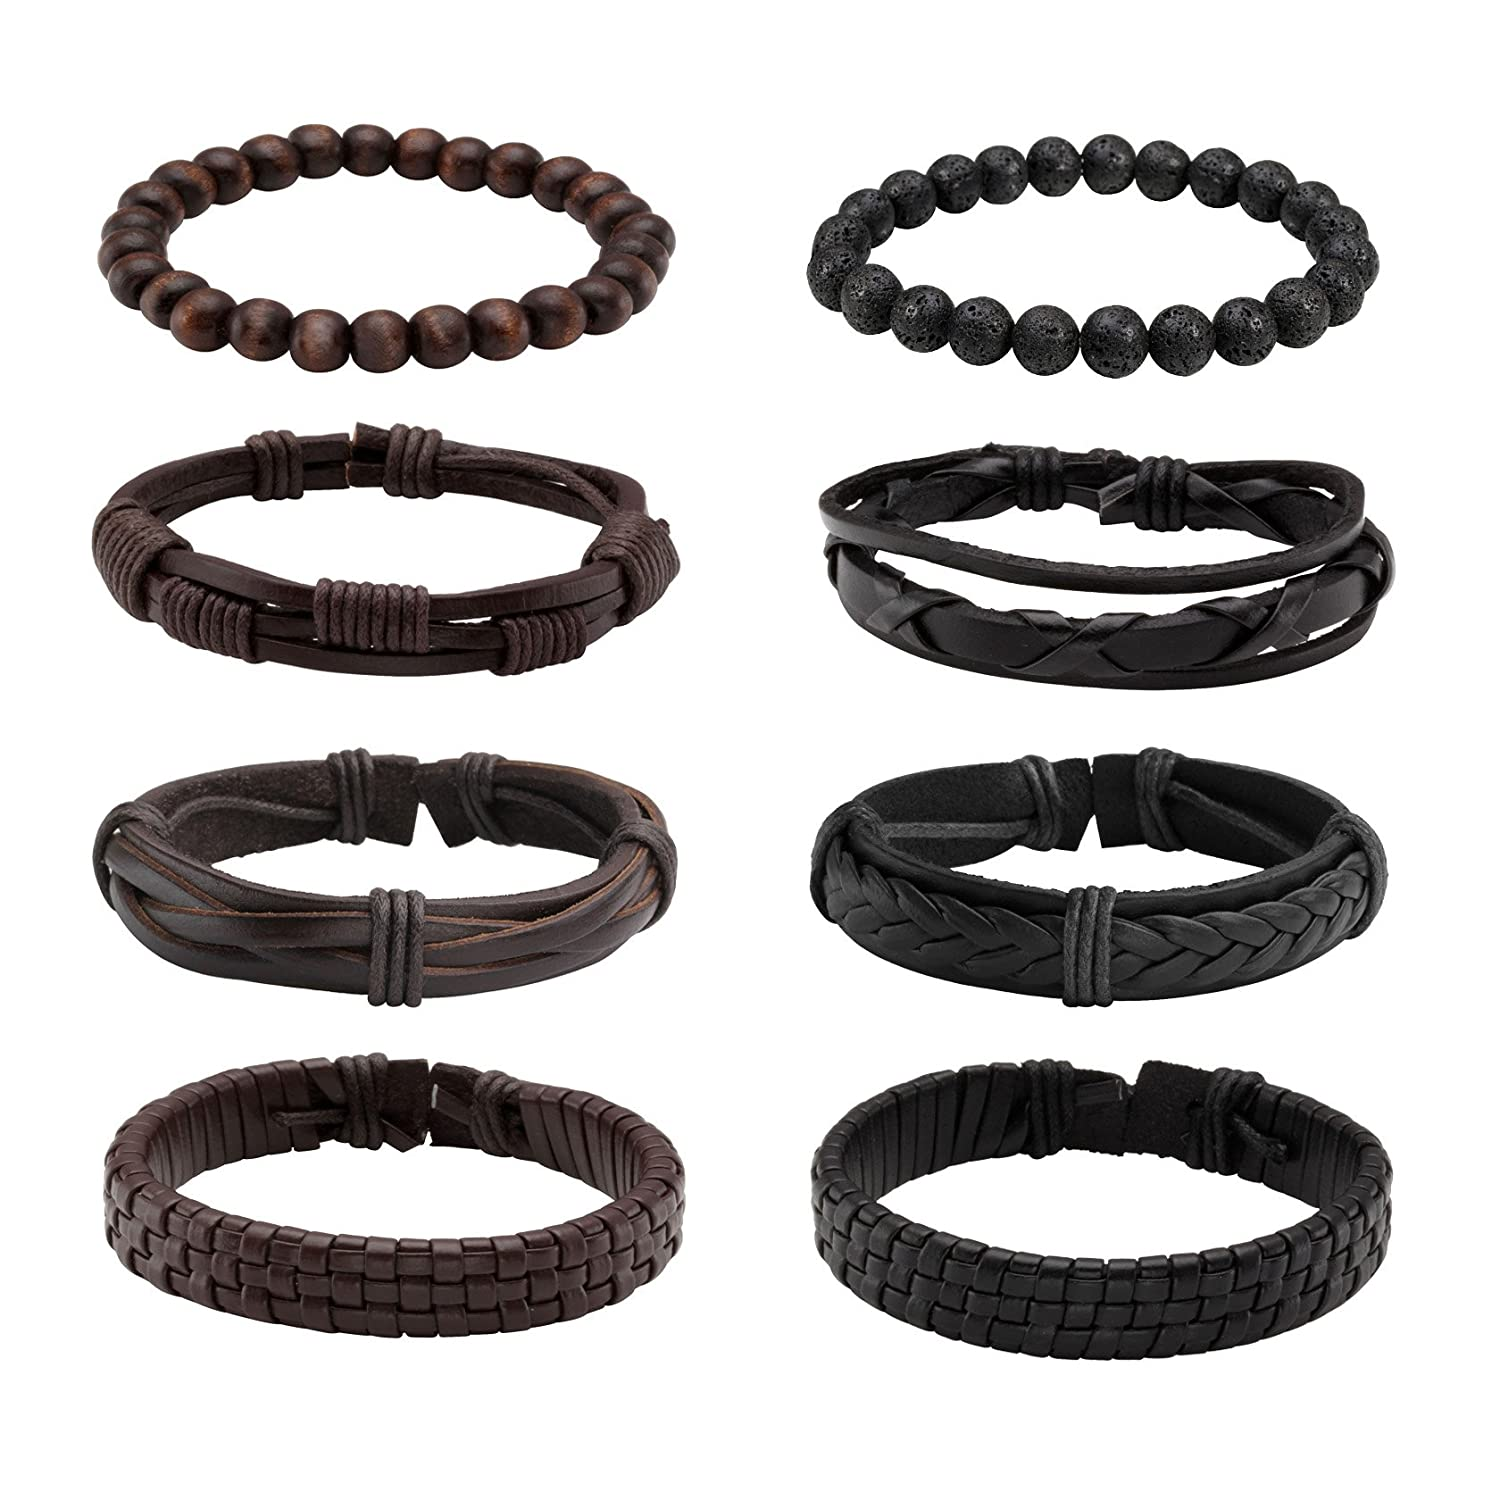 Milakoo 10 Pcs Braided Leather Bracelets for Men Women Wooden Beaded Bracelets Wrap Adjustable